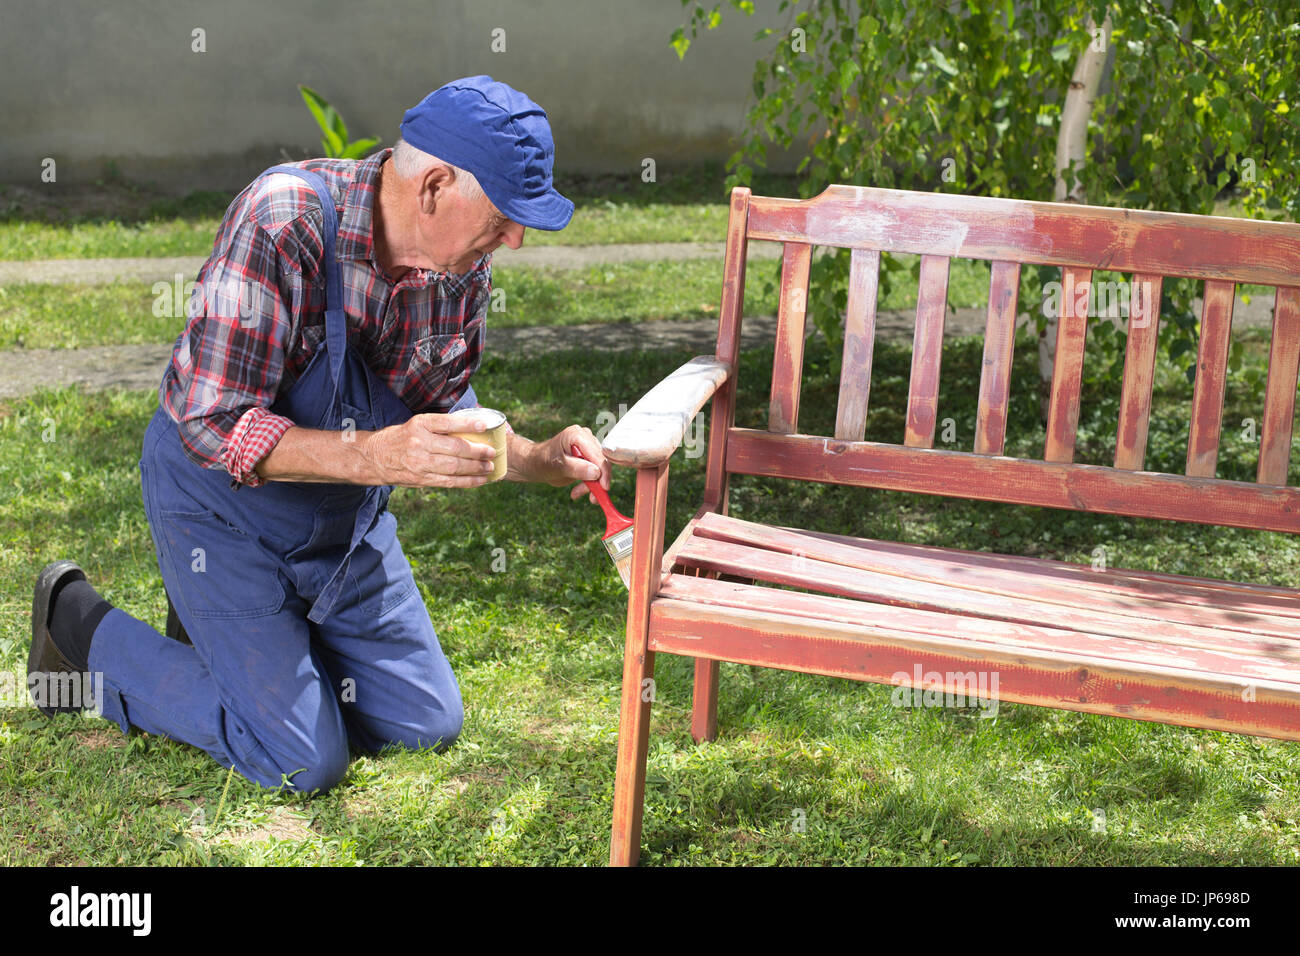 Prime Senior Man In Overalls Painting Old Bench In Garden After Machost Co Dining Chair Design Ideas Machostcouk